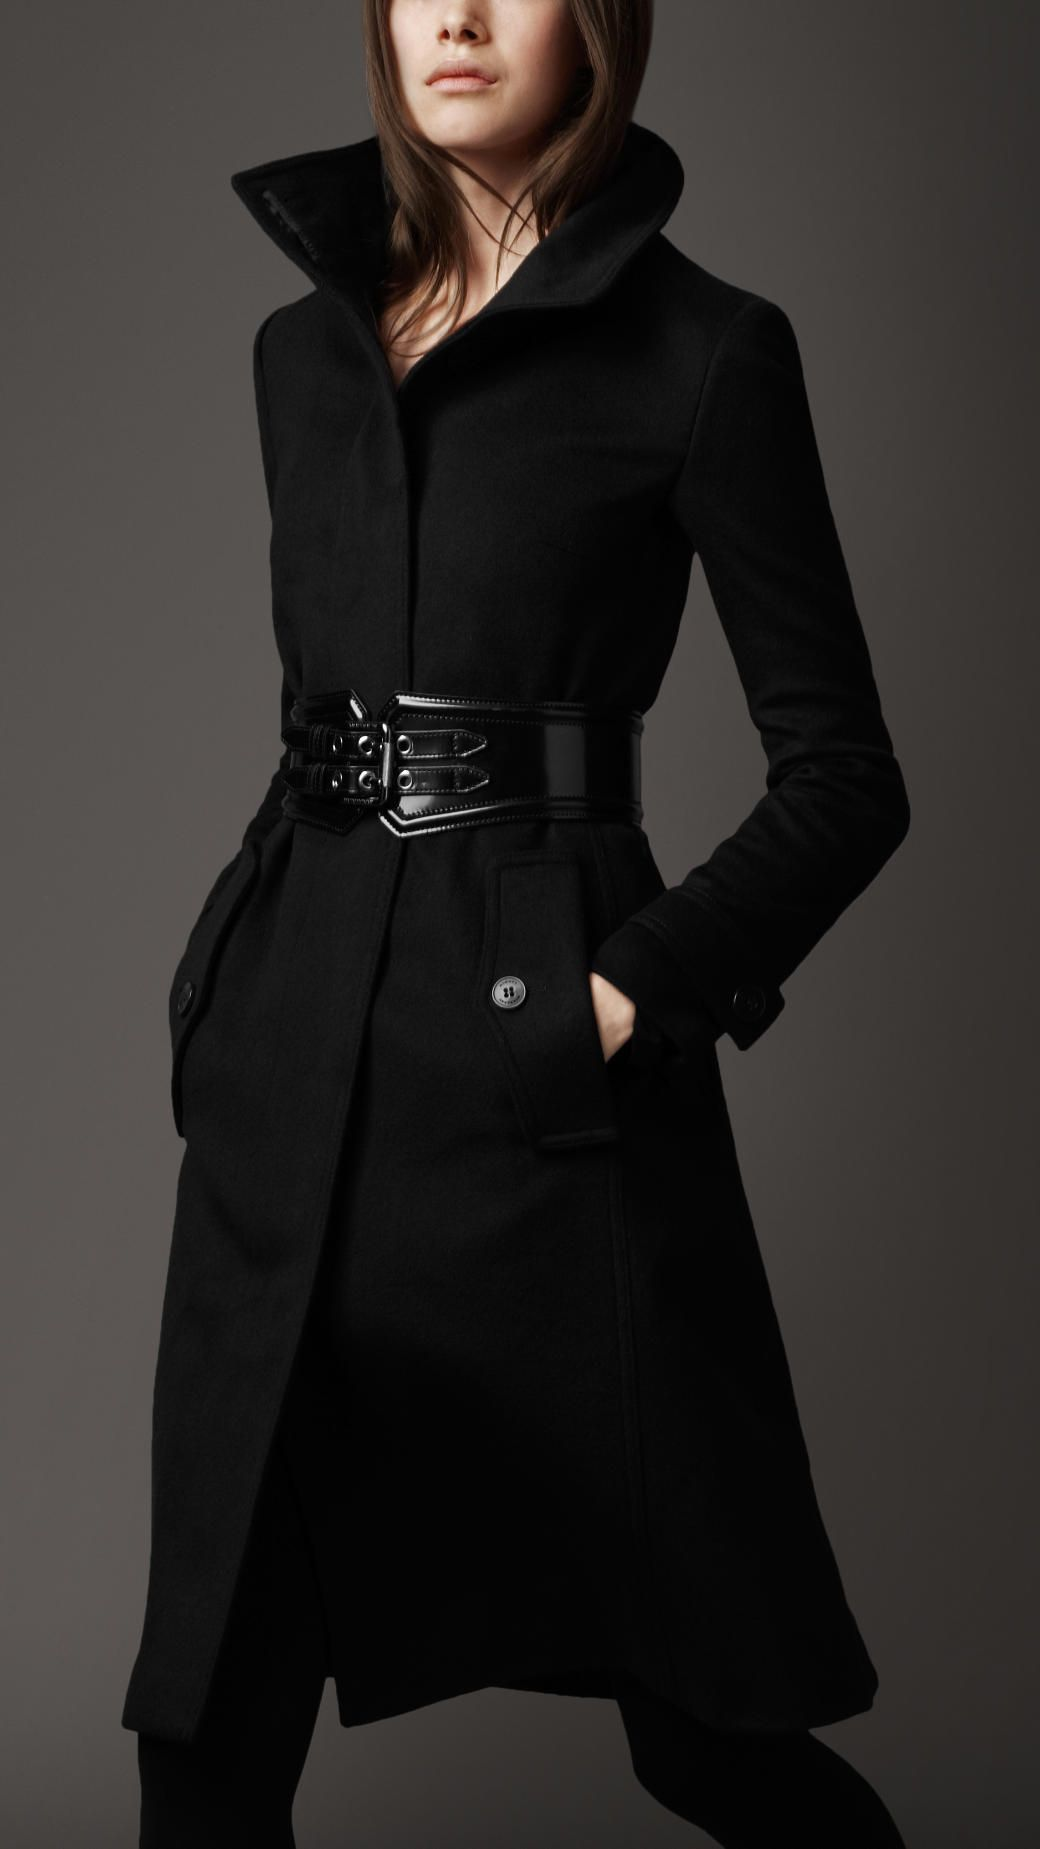 Women's Black Long Cashmere Blend Coat | Cashmere